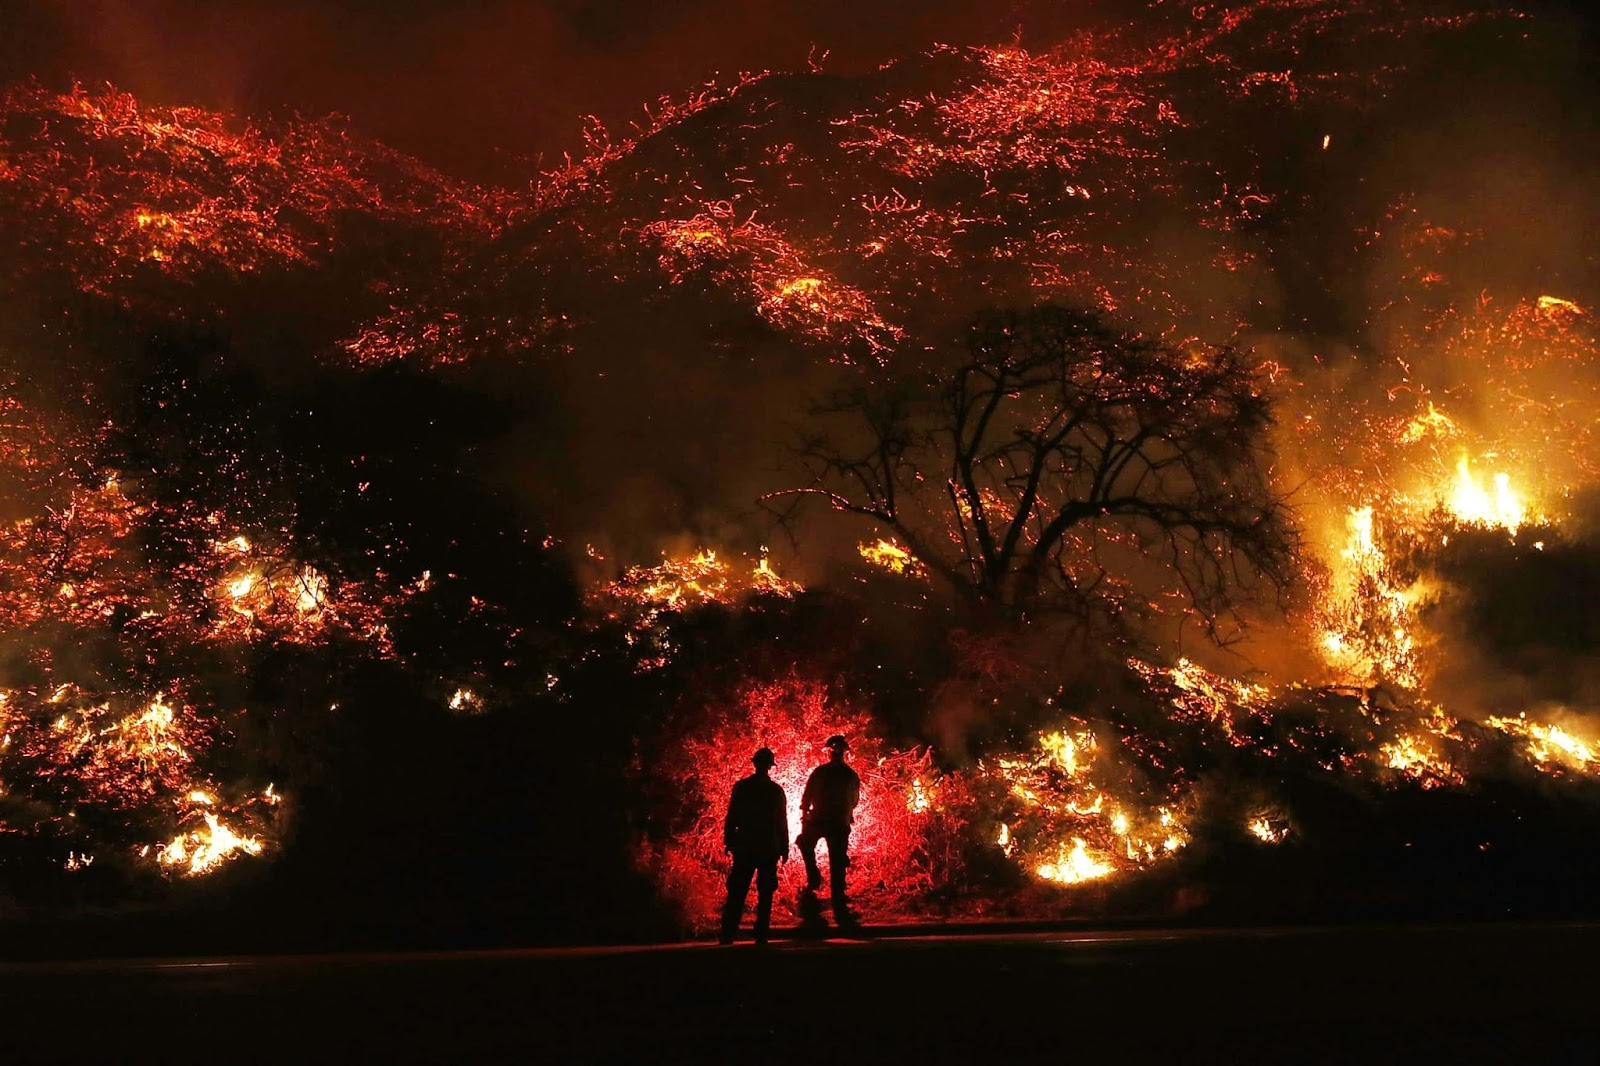 25 Of The Most Intriguing Pictures Of 2017 - Southern California wildfires